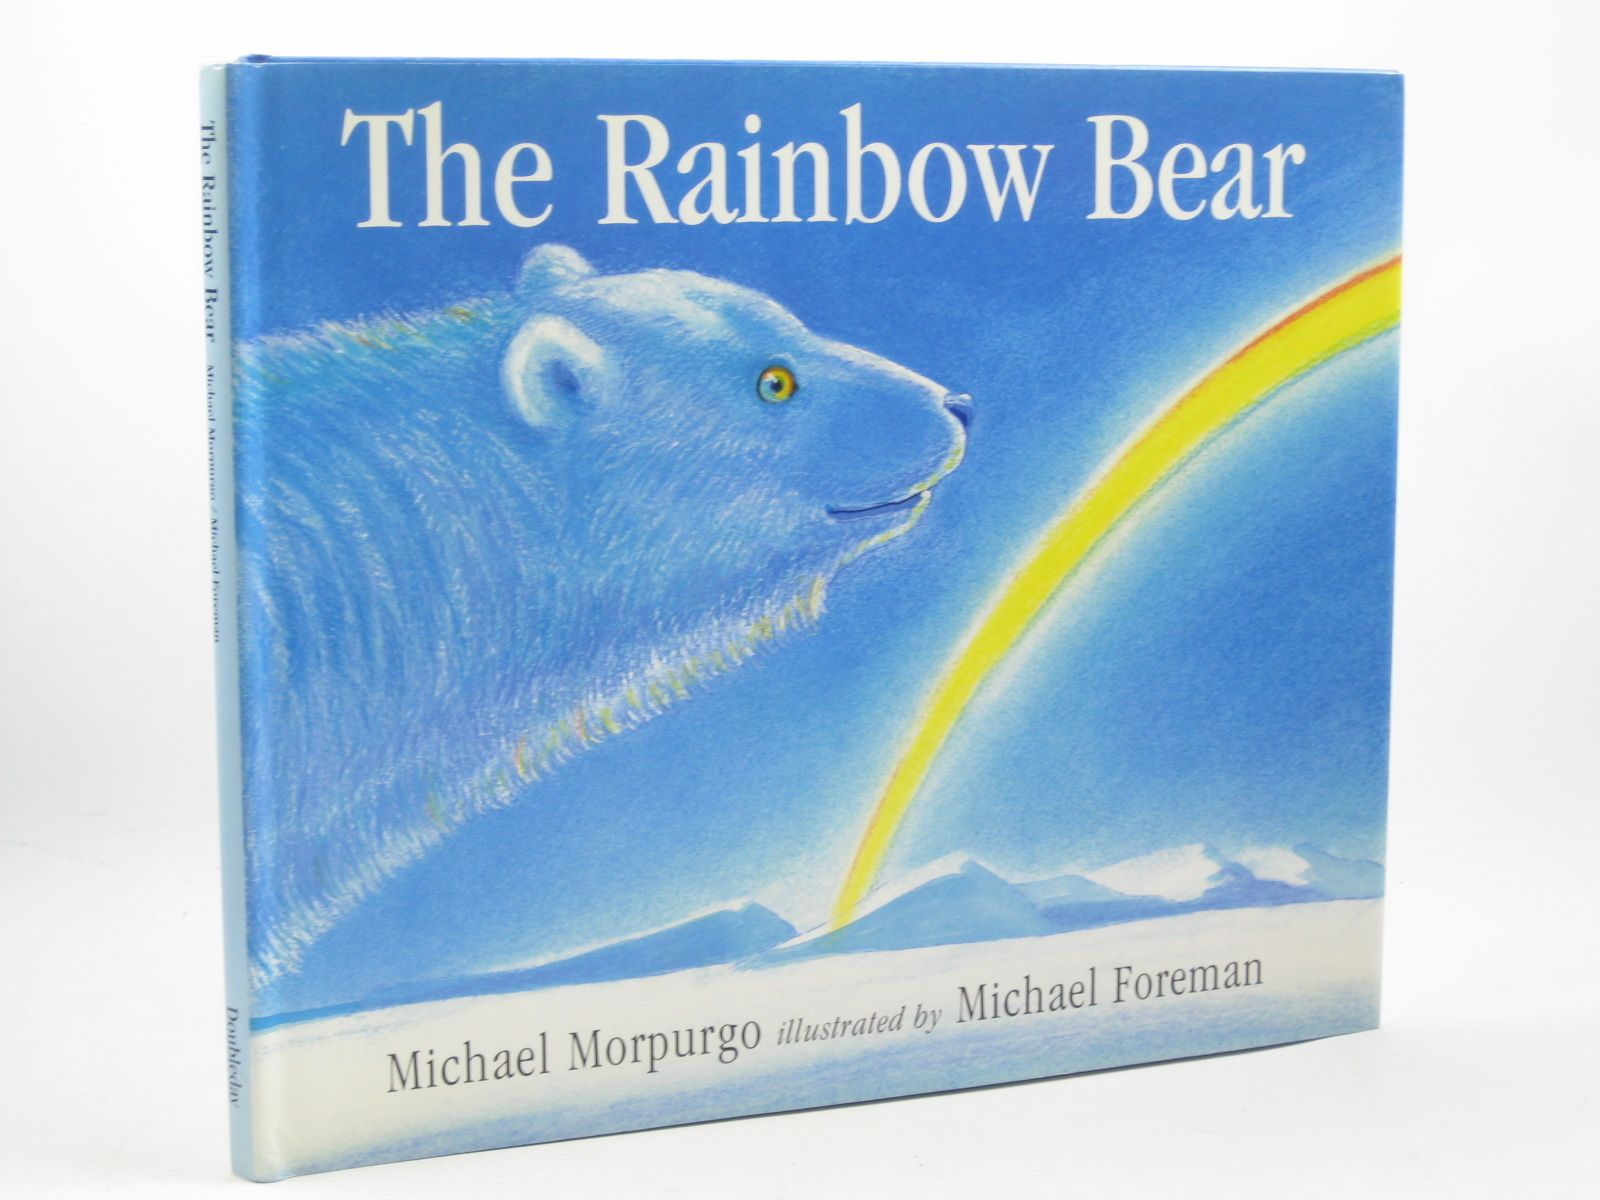 Photo of THE RAINBOW BEAR written by Morpurgo, Michael illustrated by Foreman, Michael published by Doubleday (STOCK CODE: 1312500)  for sale by Stella & Rose's Books